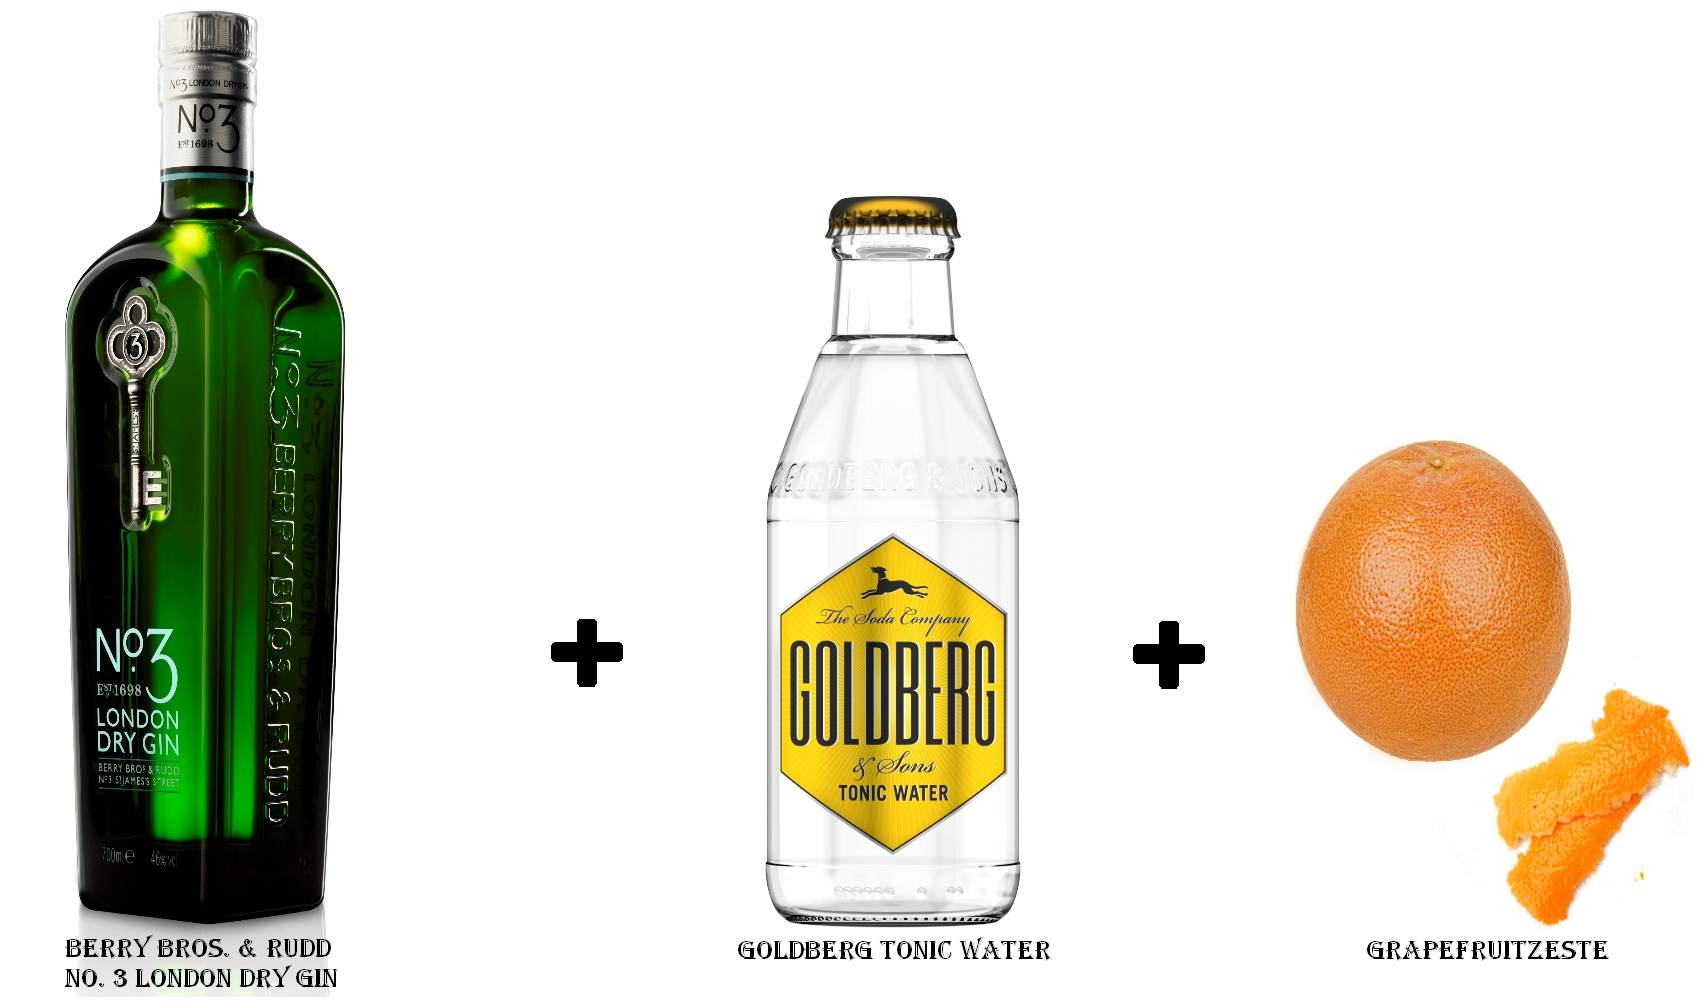 Berry Bros. & Rudd No. 3 London Dry Gin + Goldberg Tonic Water + Grapefruitzeste